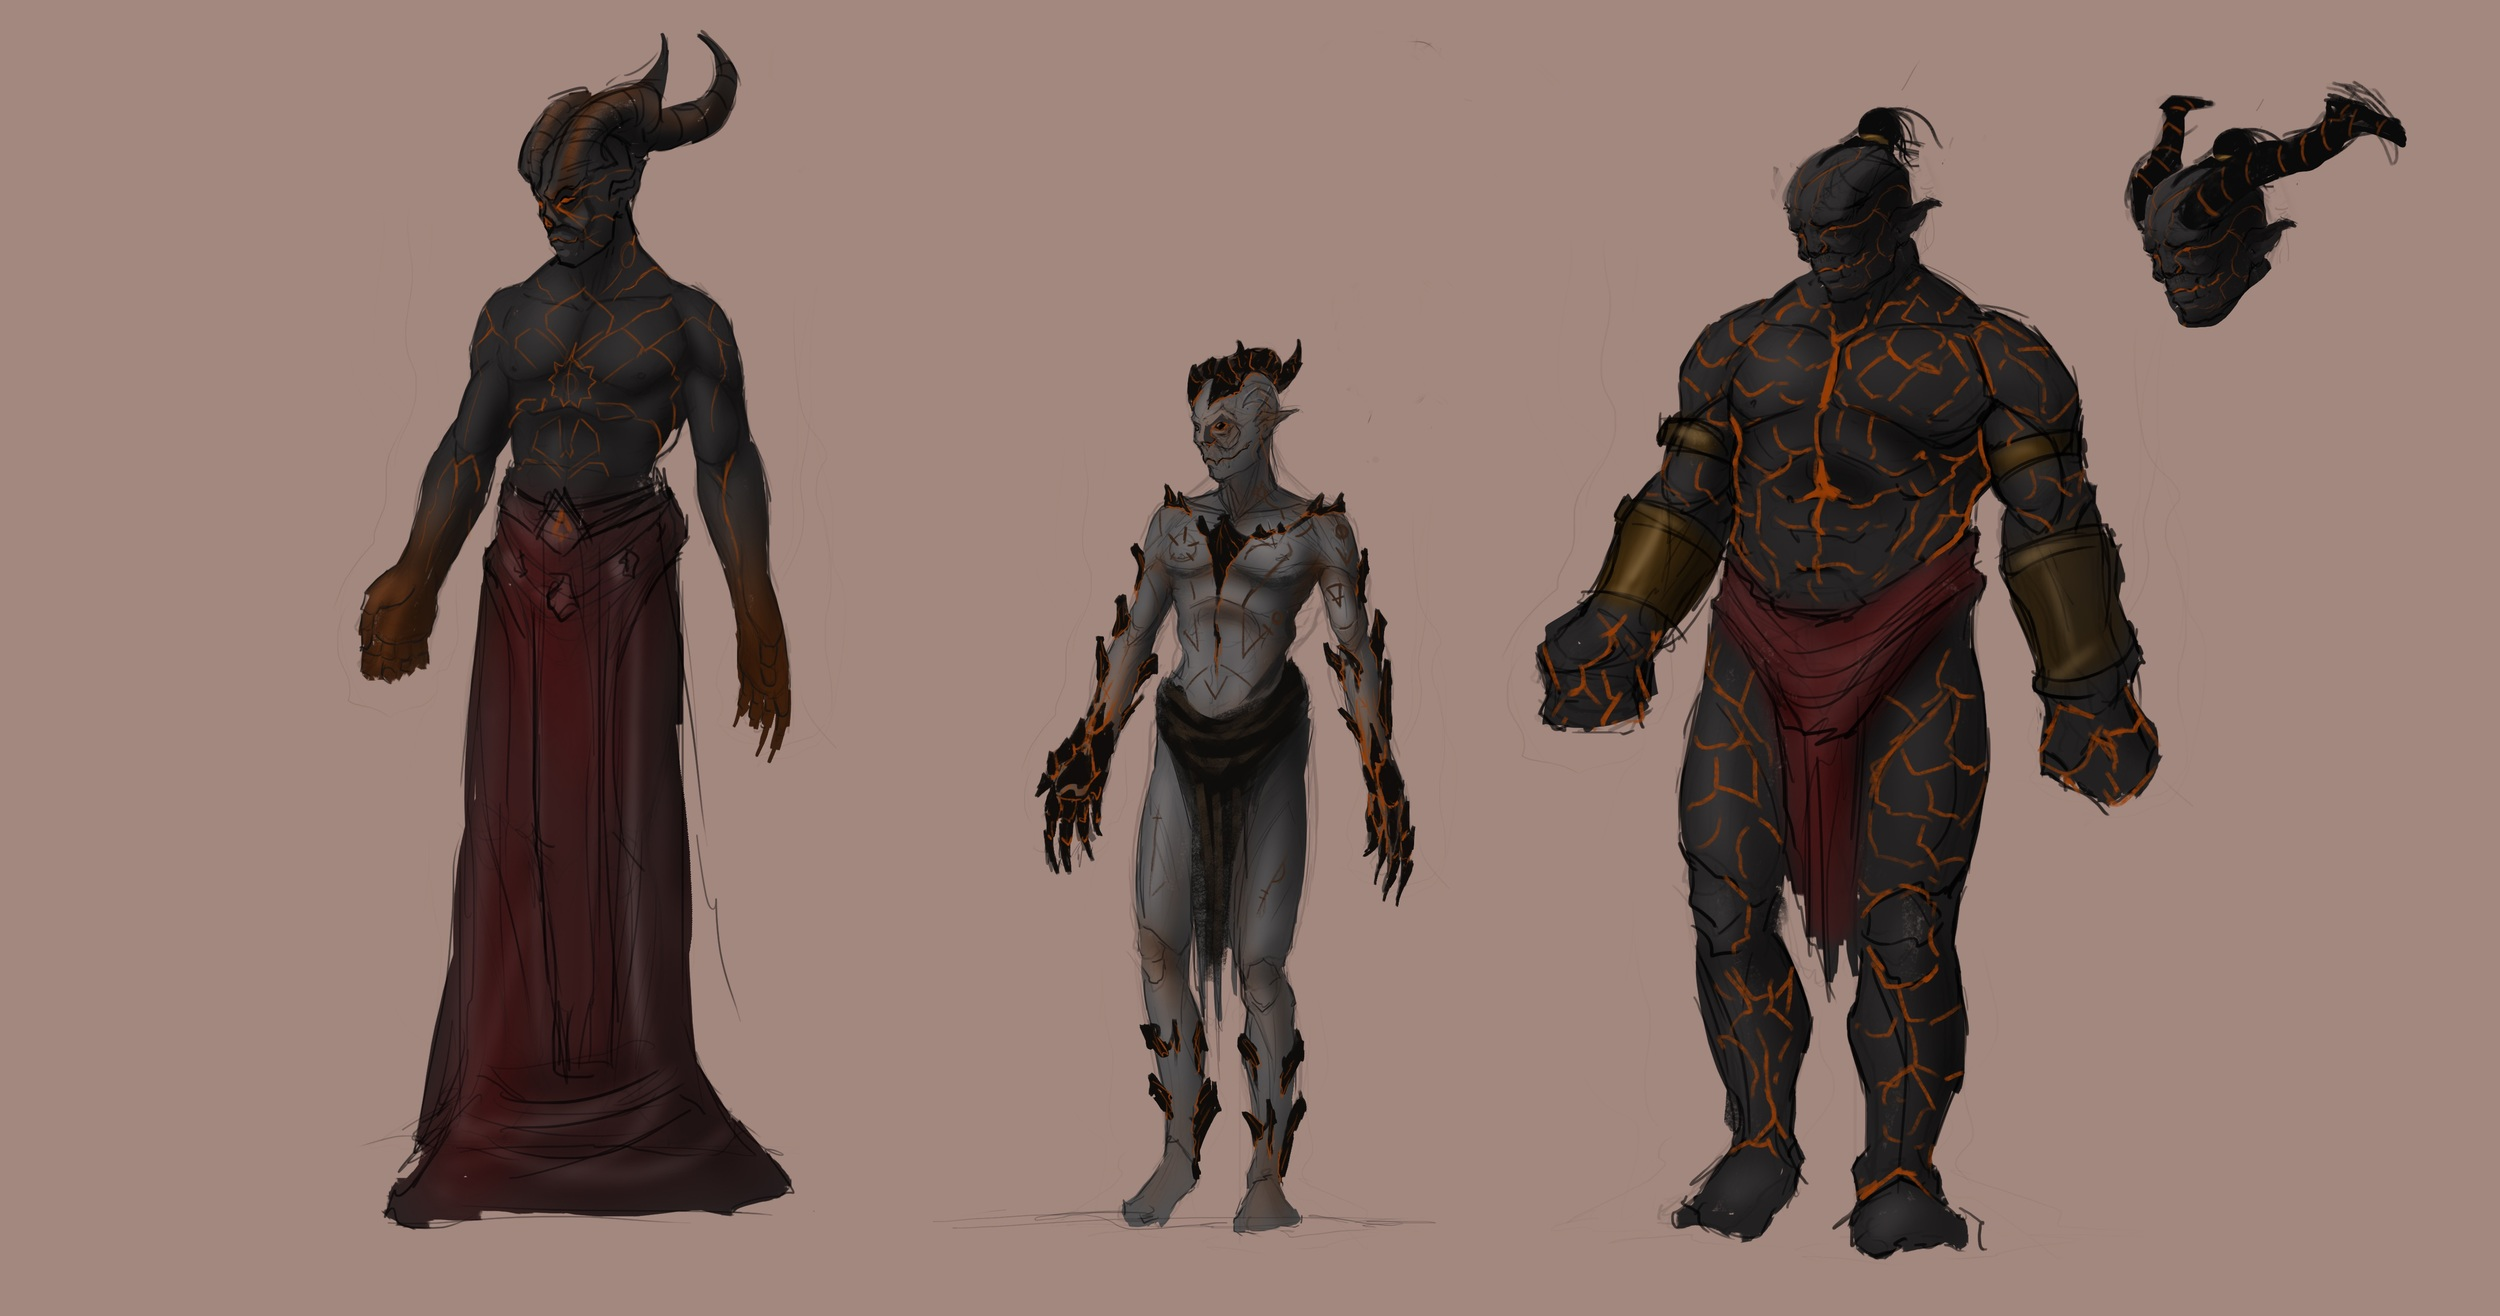 Some more Jinn designs